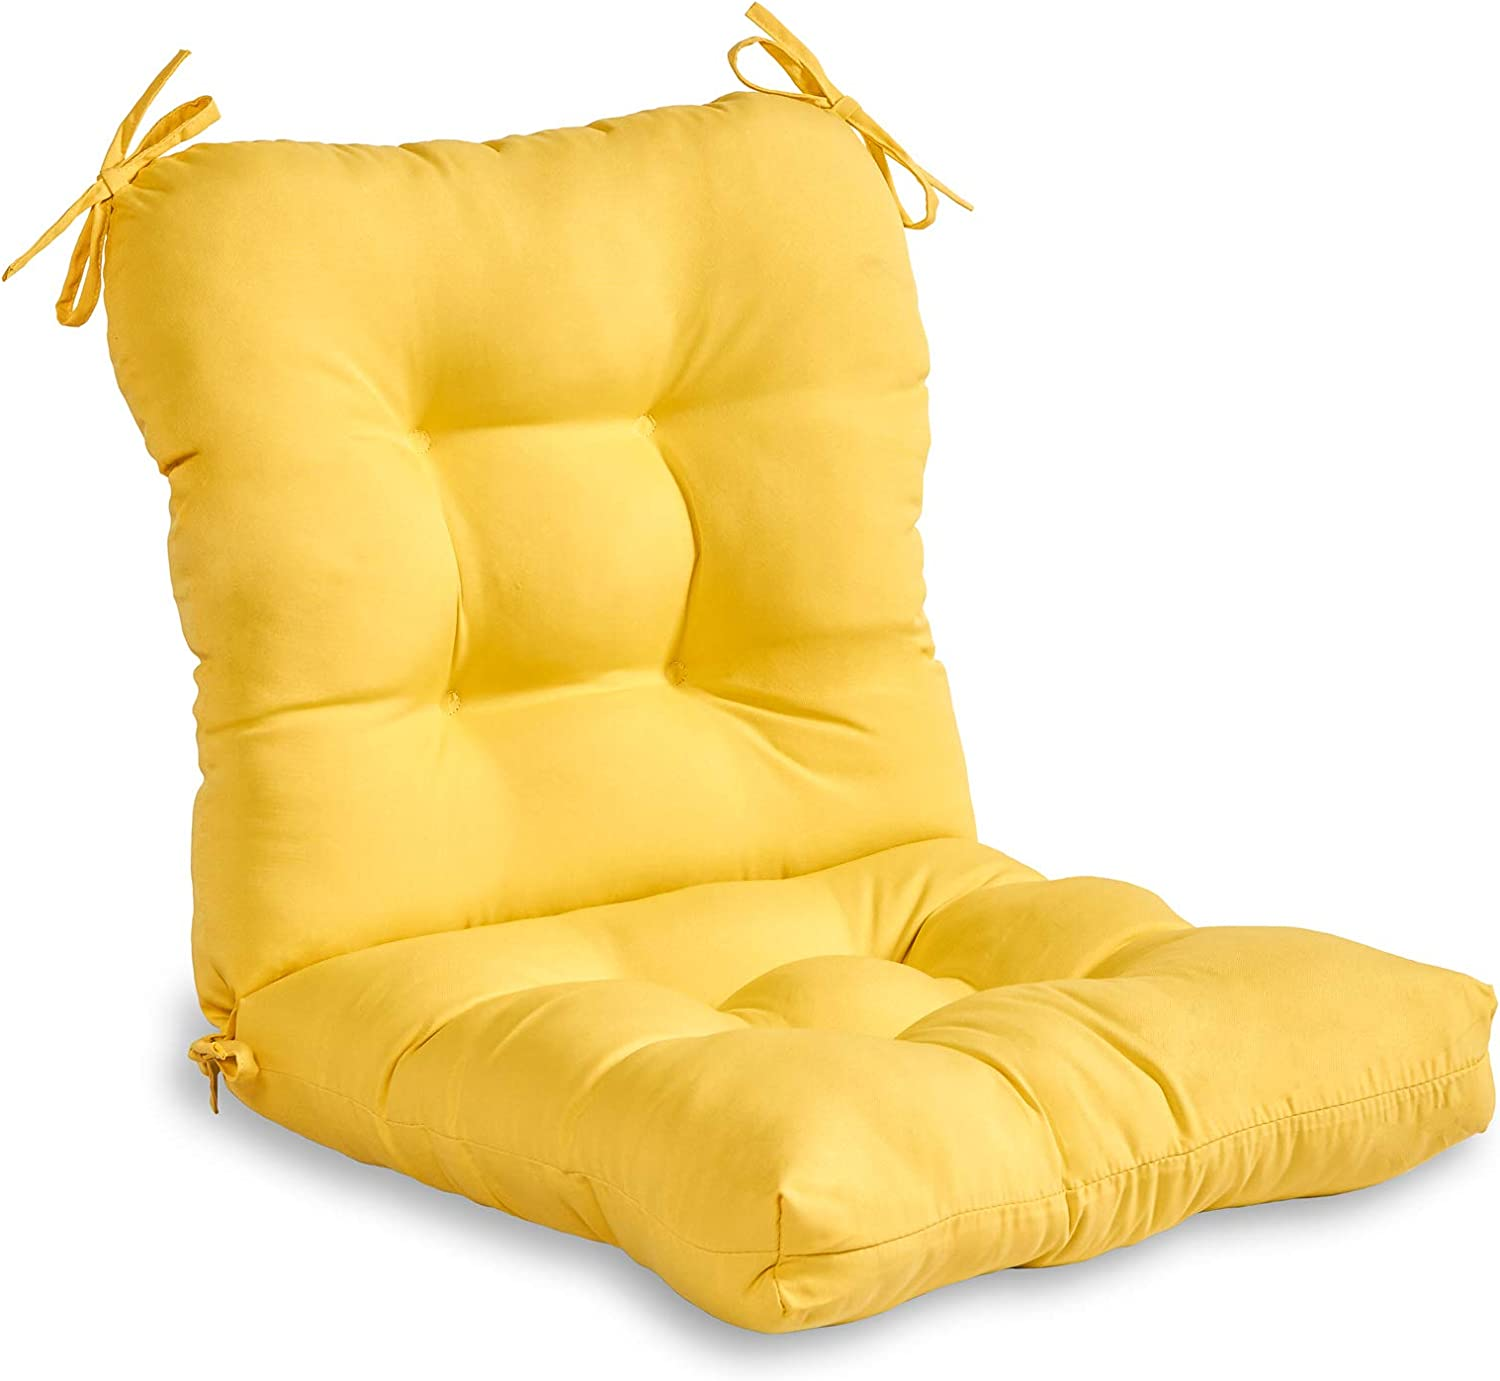 South Pine Porch Outdoor Solid Sunbeam Yellow 5% OFF Chair Seat Back Outlet SALE Cu